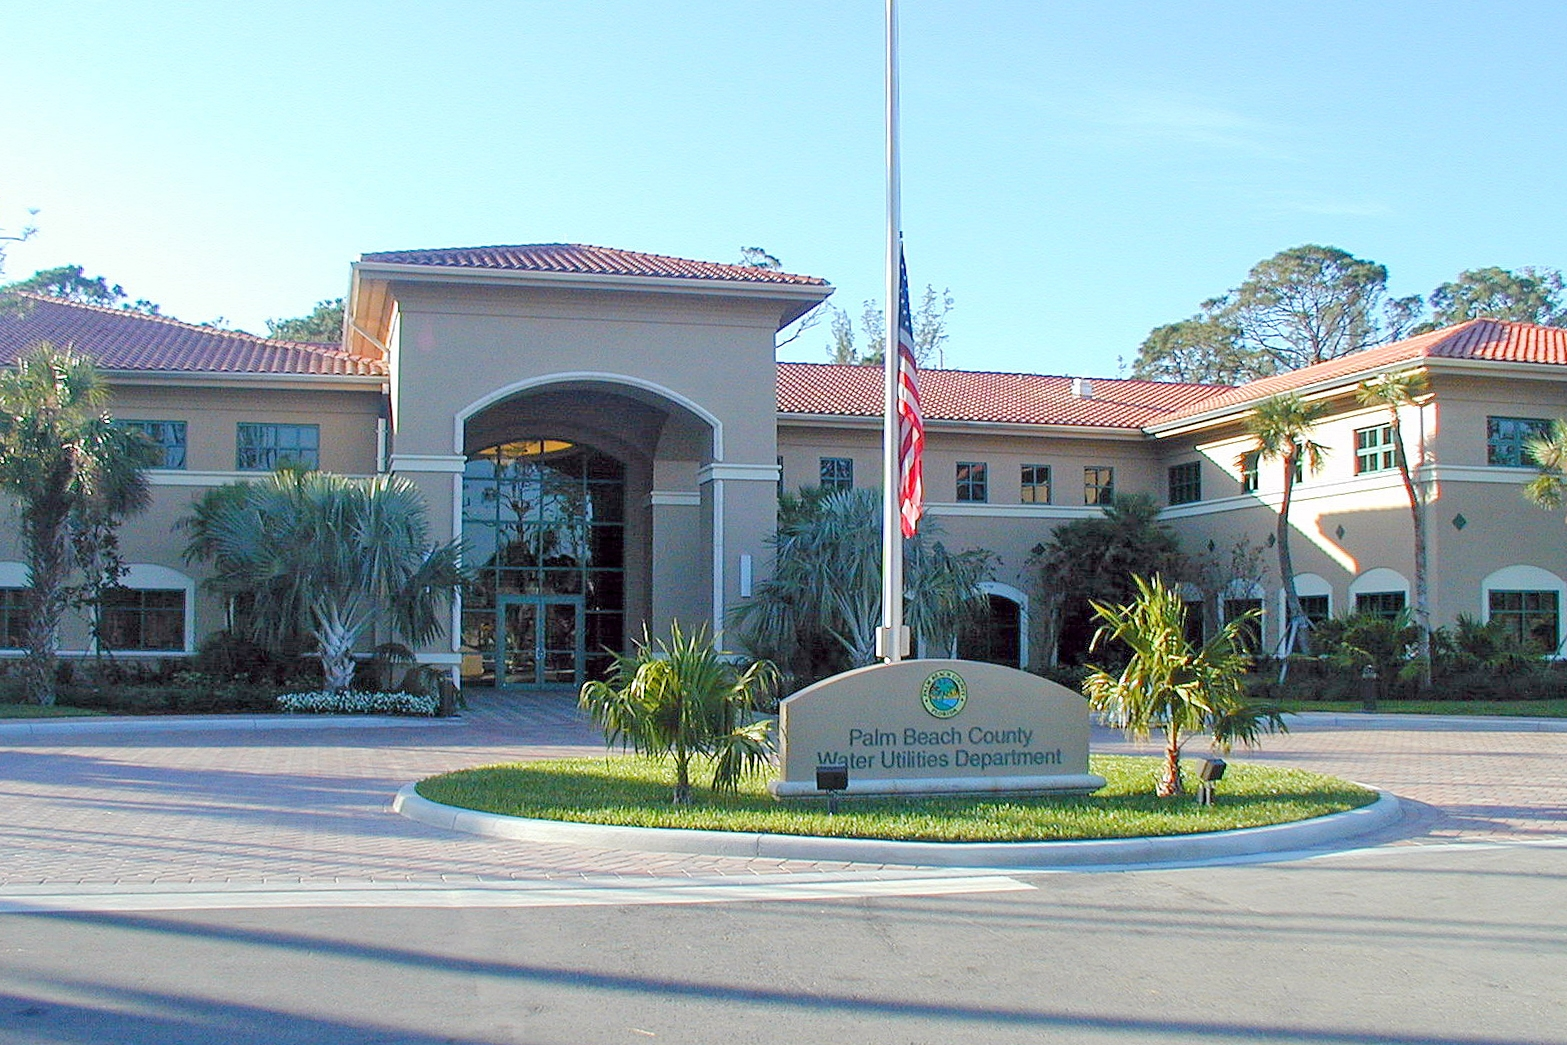 PBC Water Utilities Dept. Central Regional Operations + Maintenance Center -